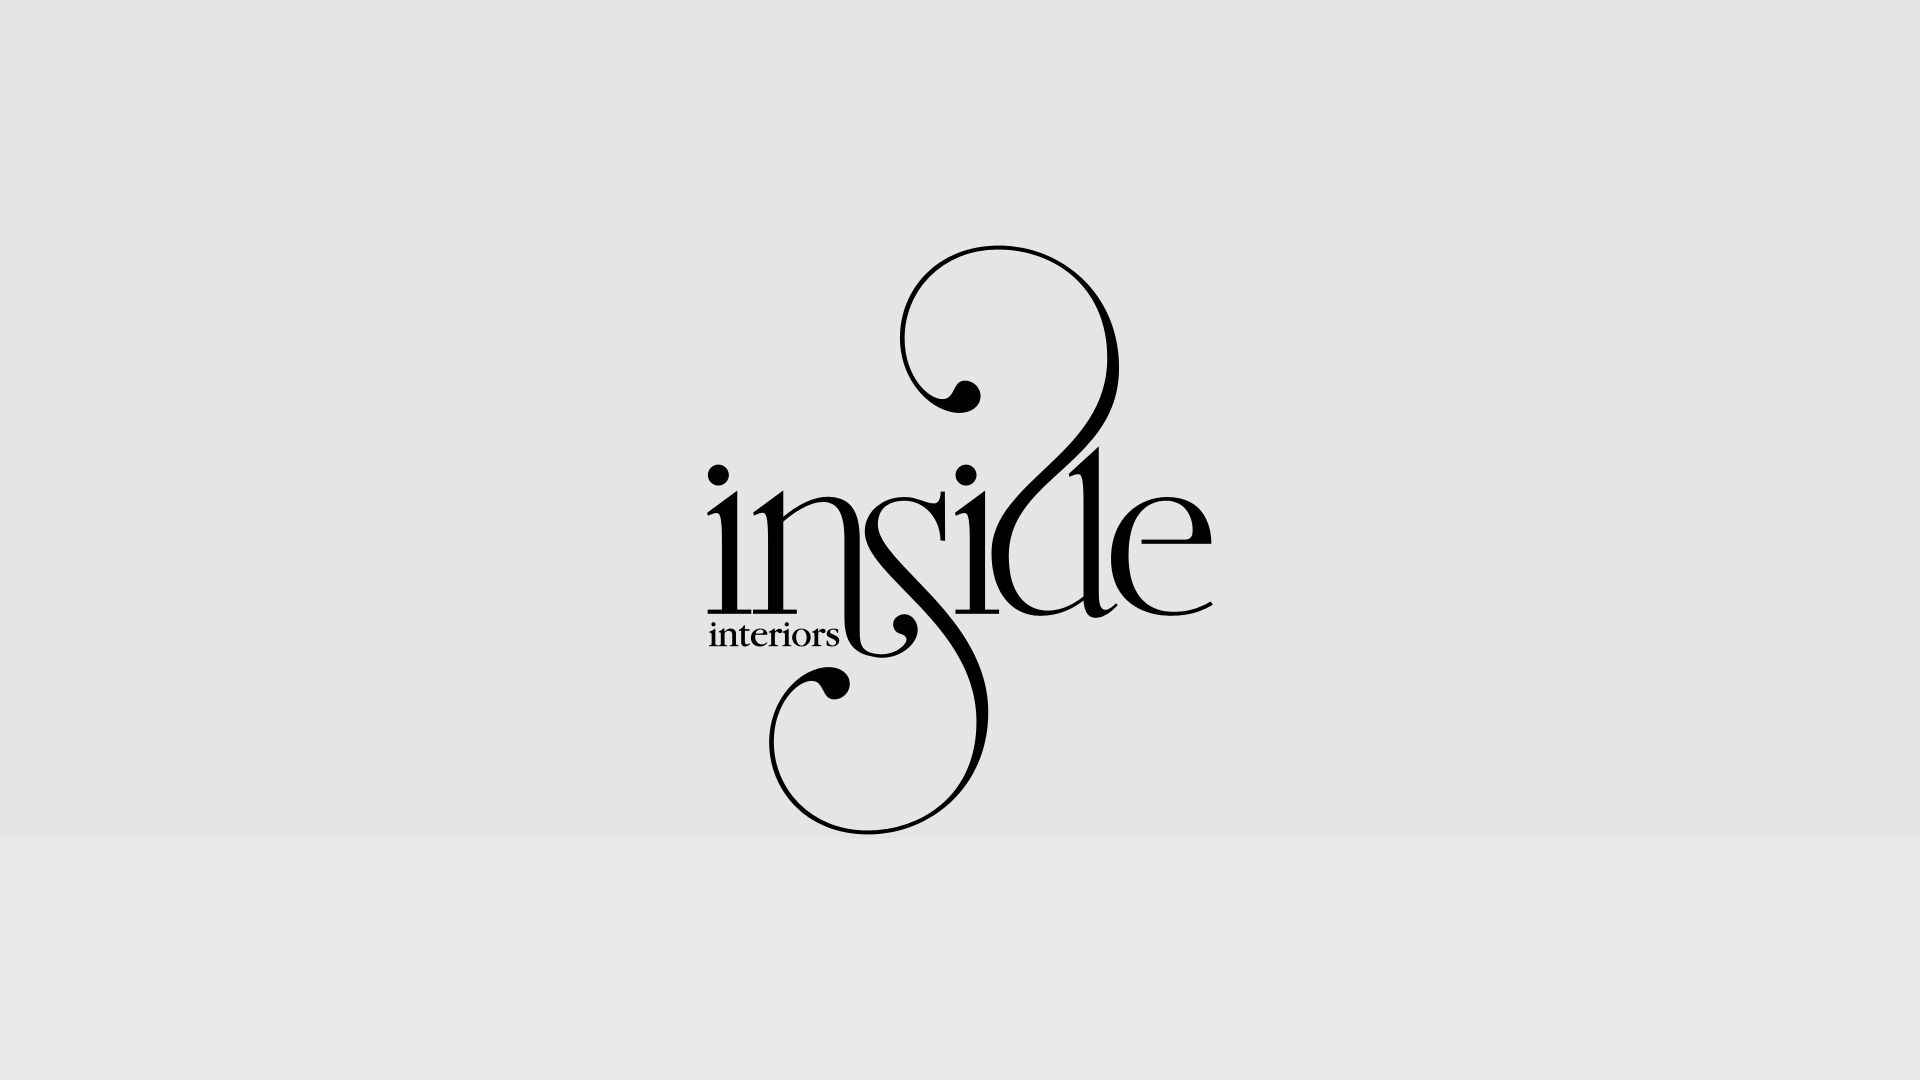 Inside Interiors Logo Very Elegant Style The Elongated Detail